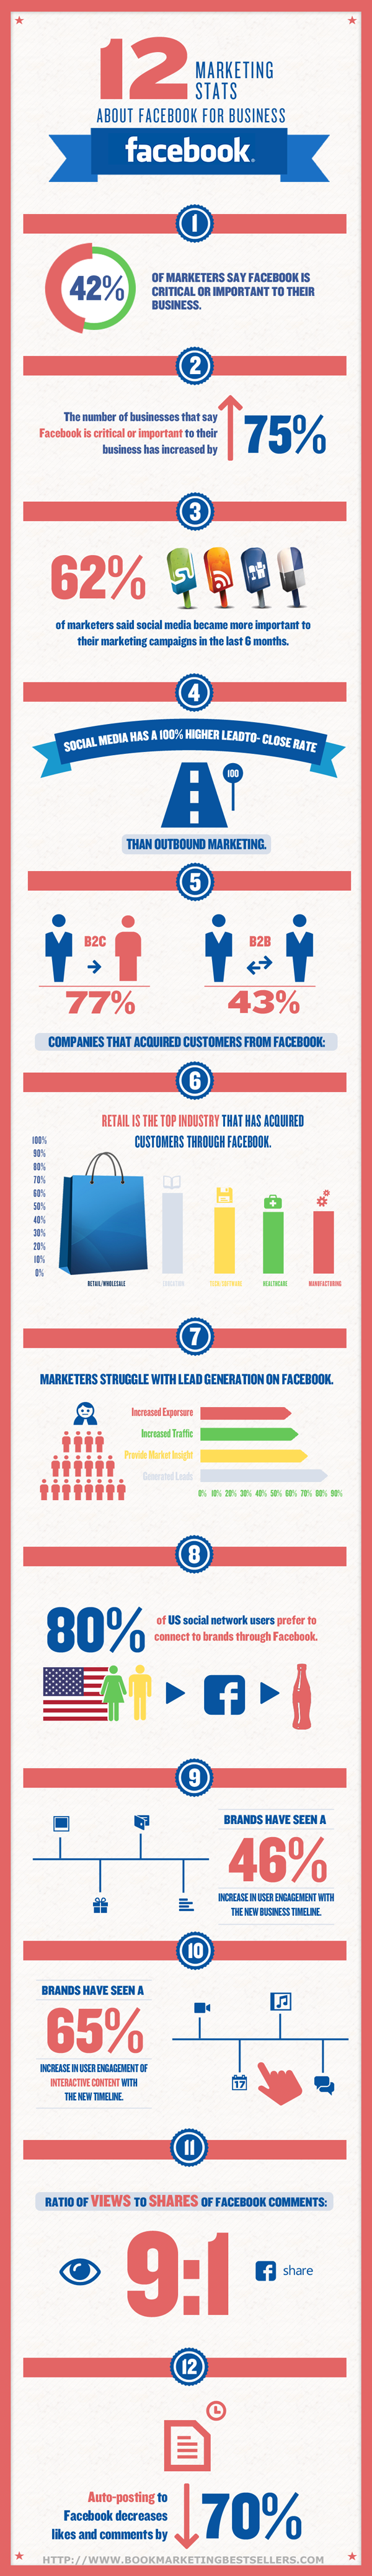 12 Marketing Secrets about Facebook for your Business.